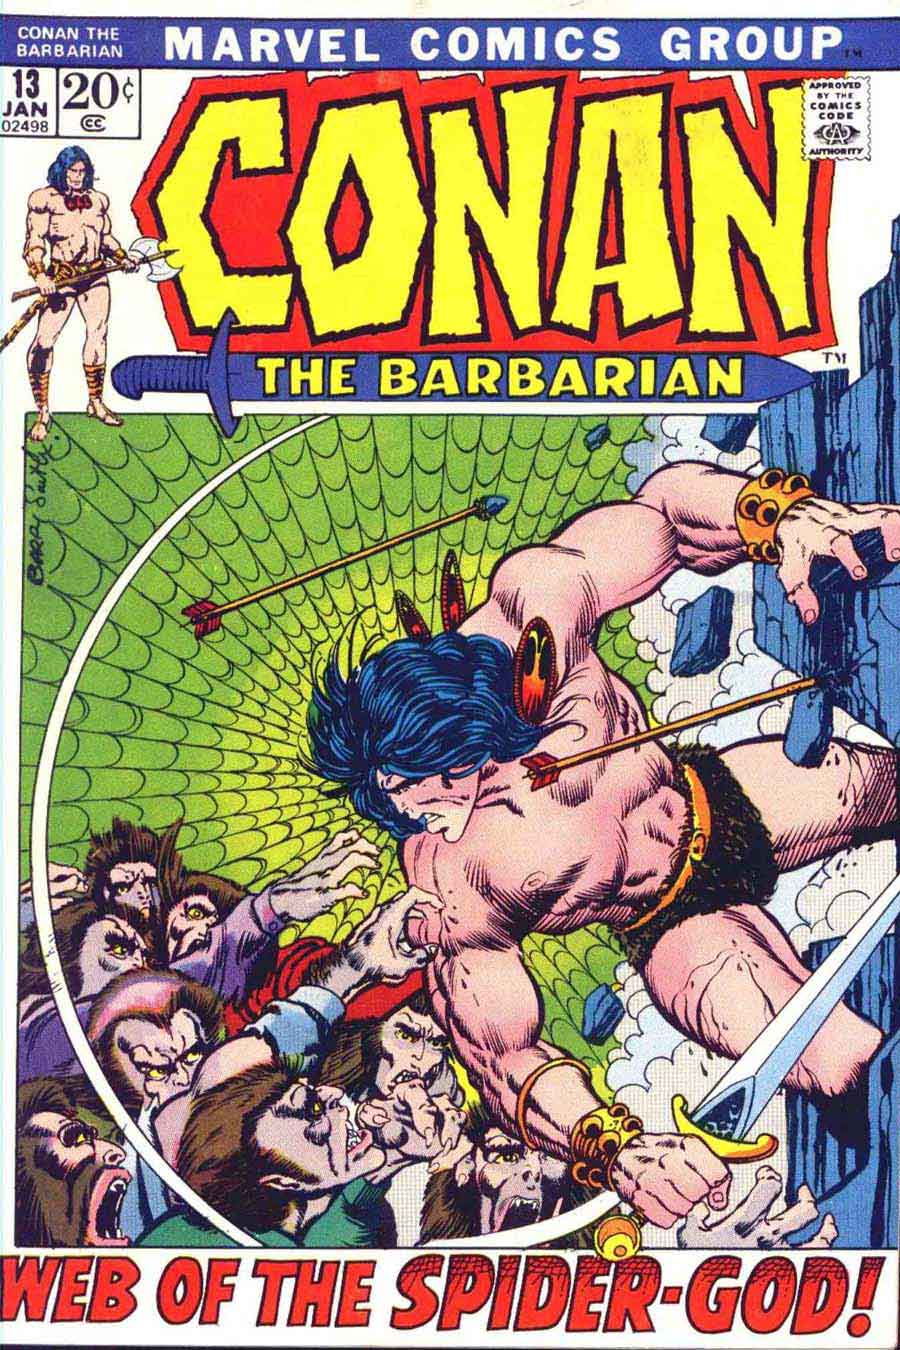 Conan the Barbarian v1 #13 marvel comic book cover art by Barry Windsor Smith